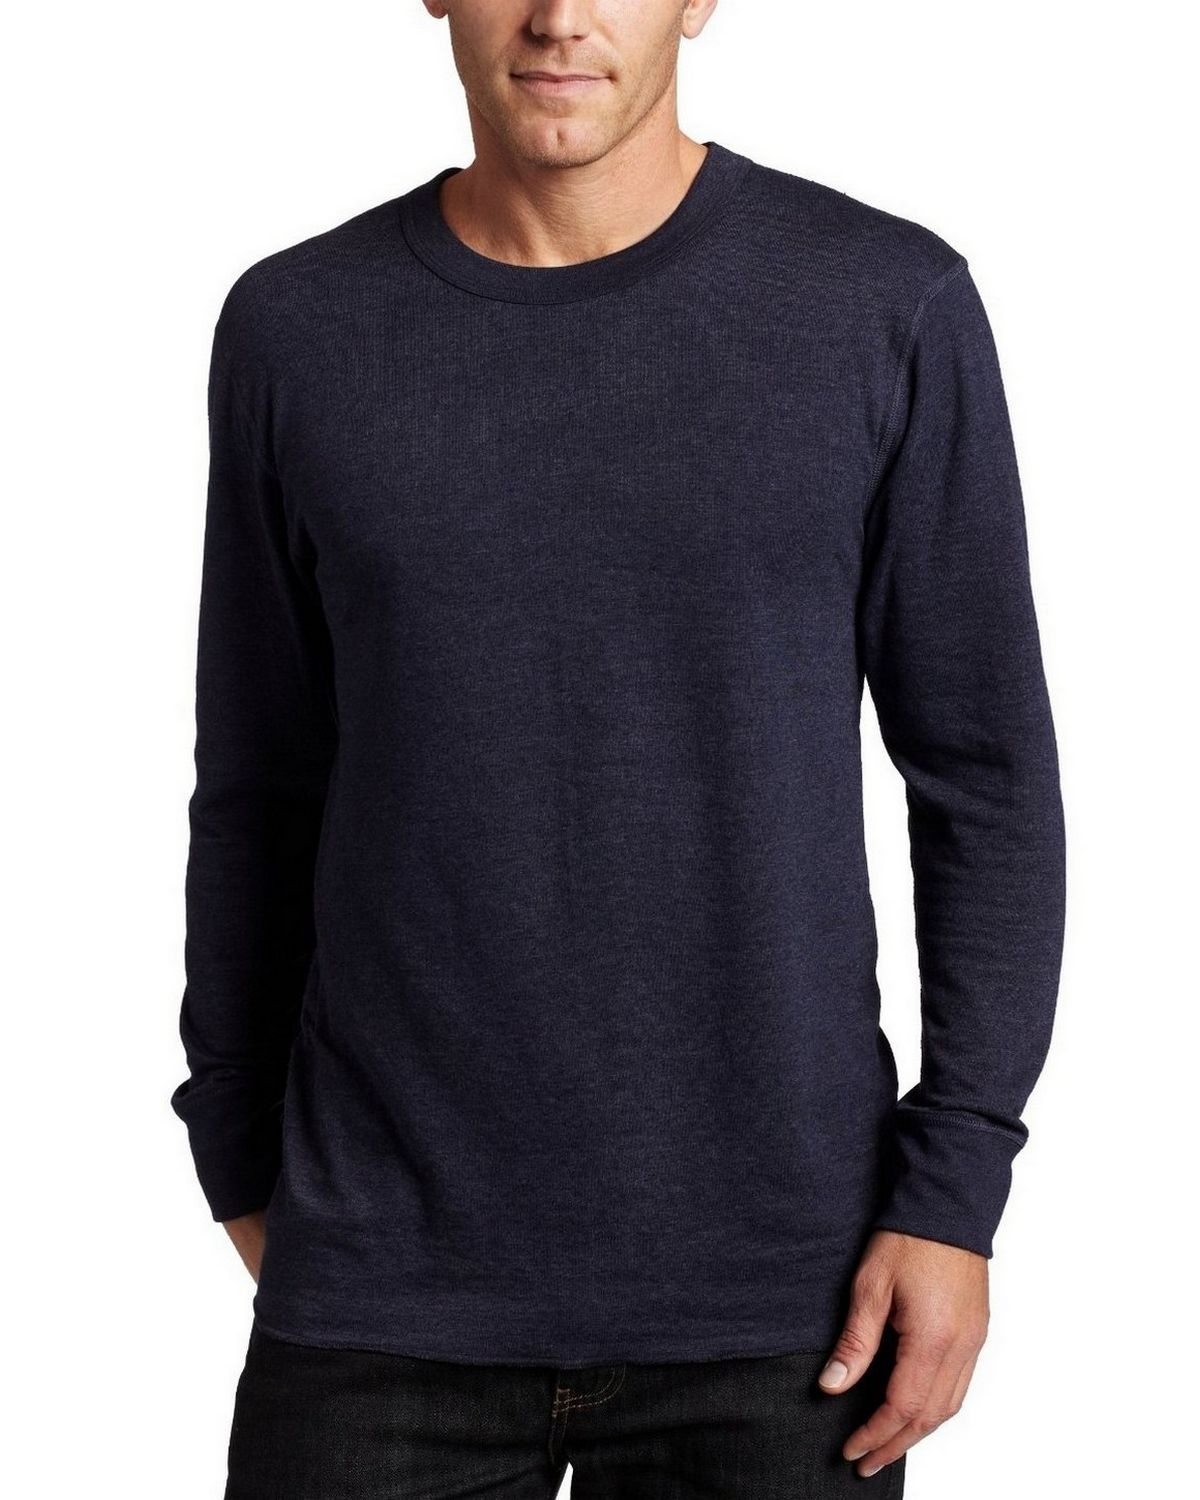 Size Chart for Duofold KMW1 Thermals - Mid-Weight Mens Long Sleeve Crew